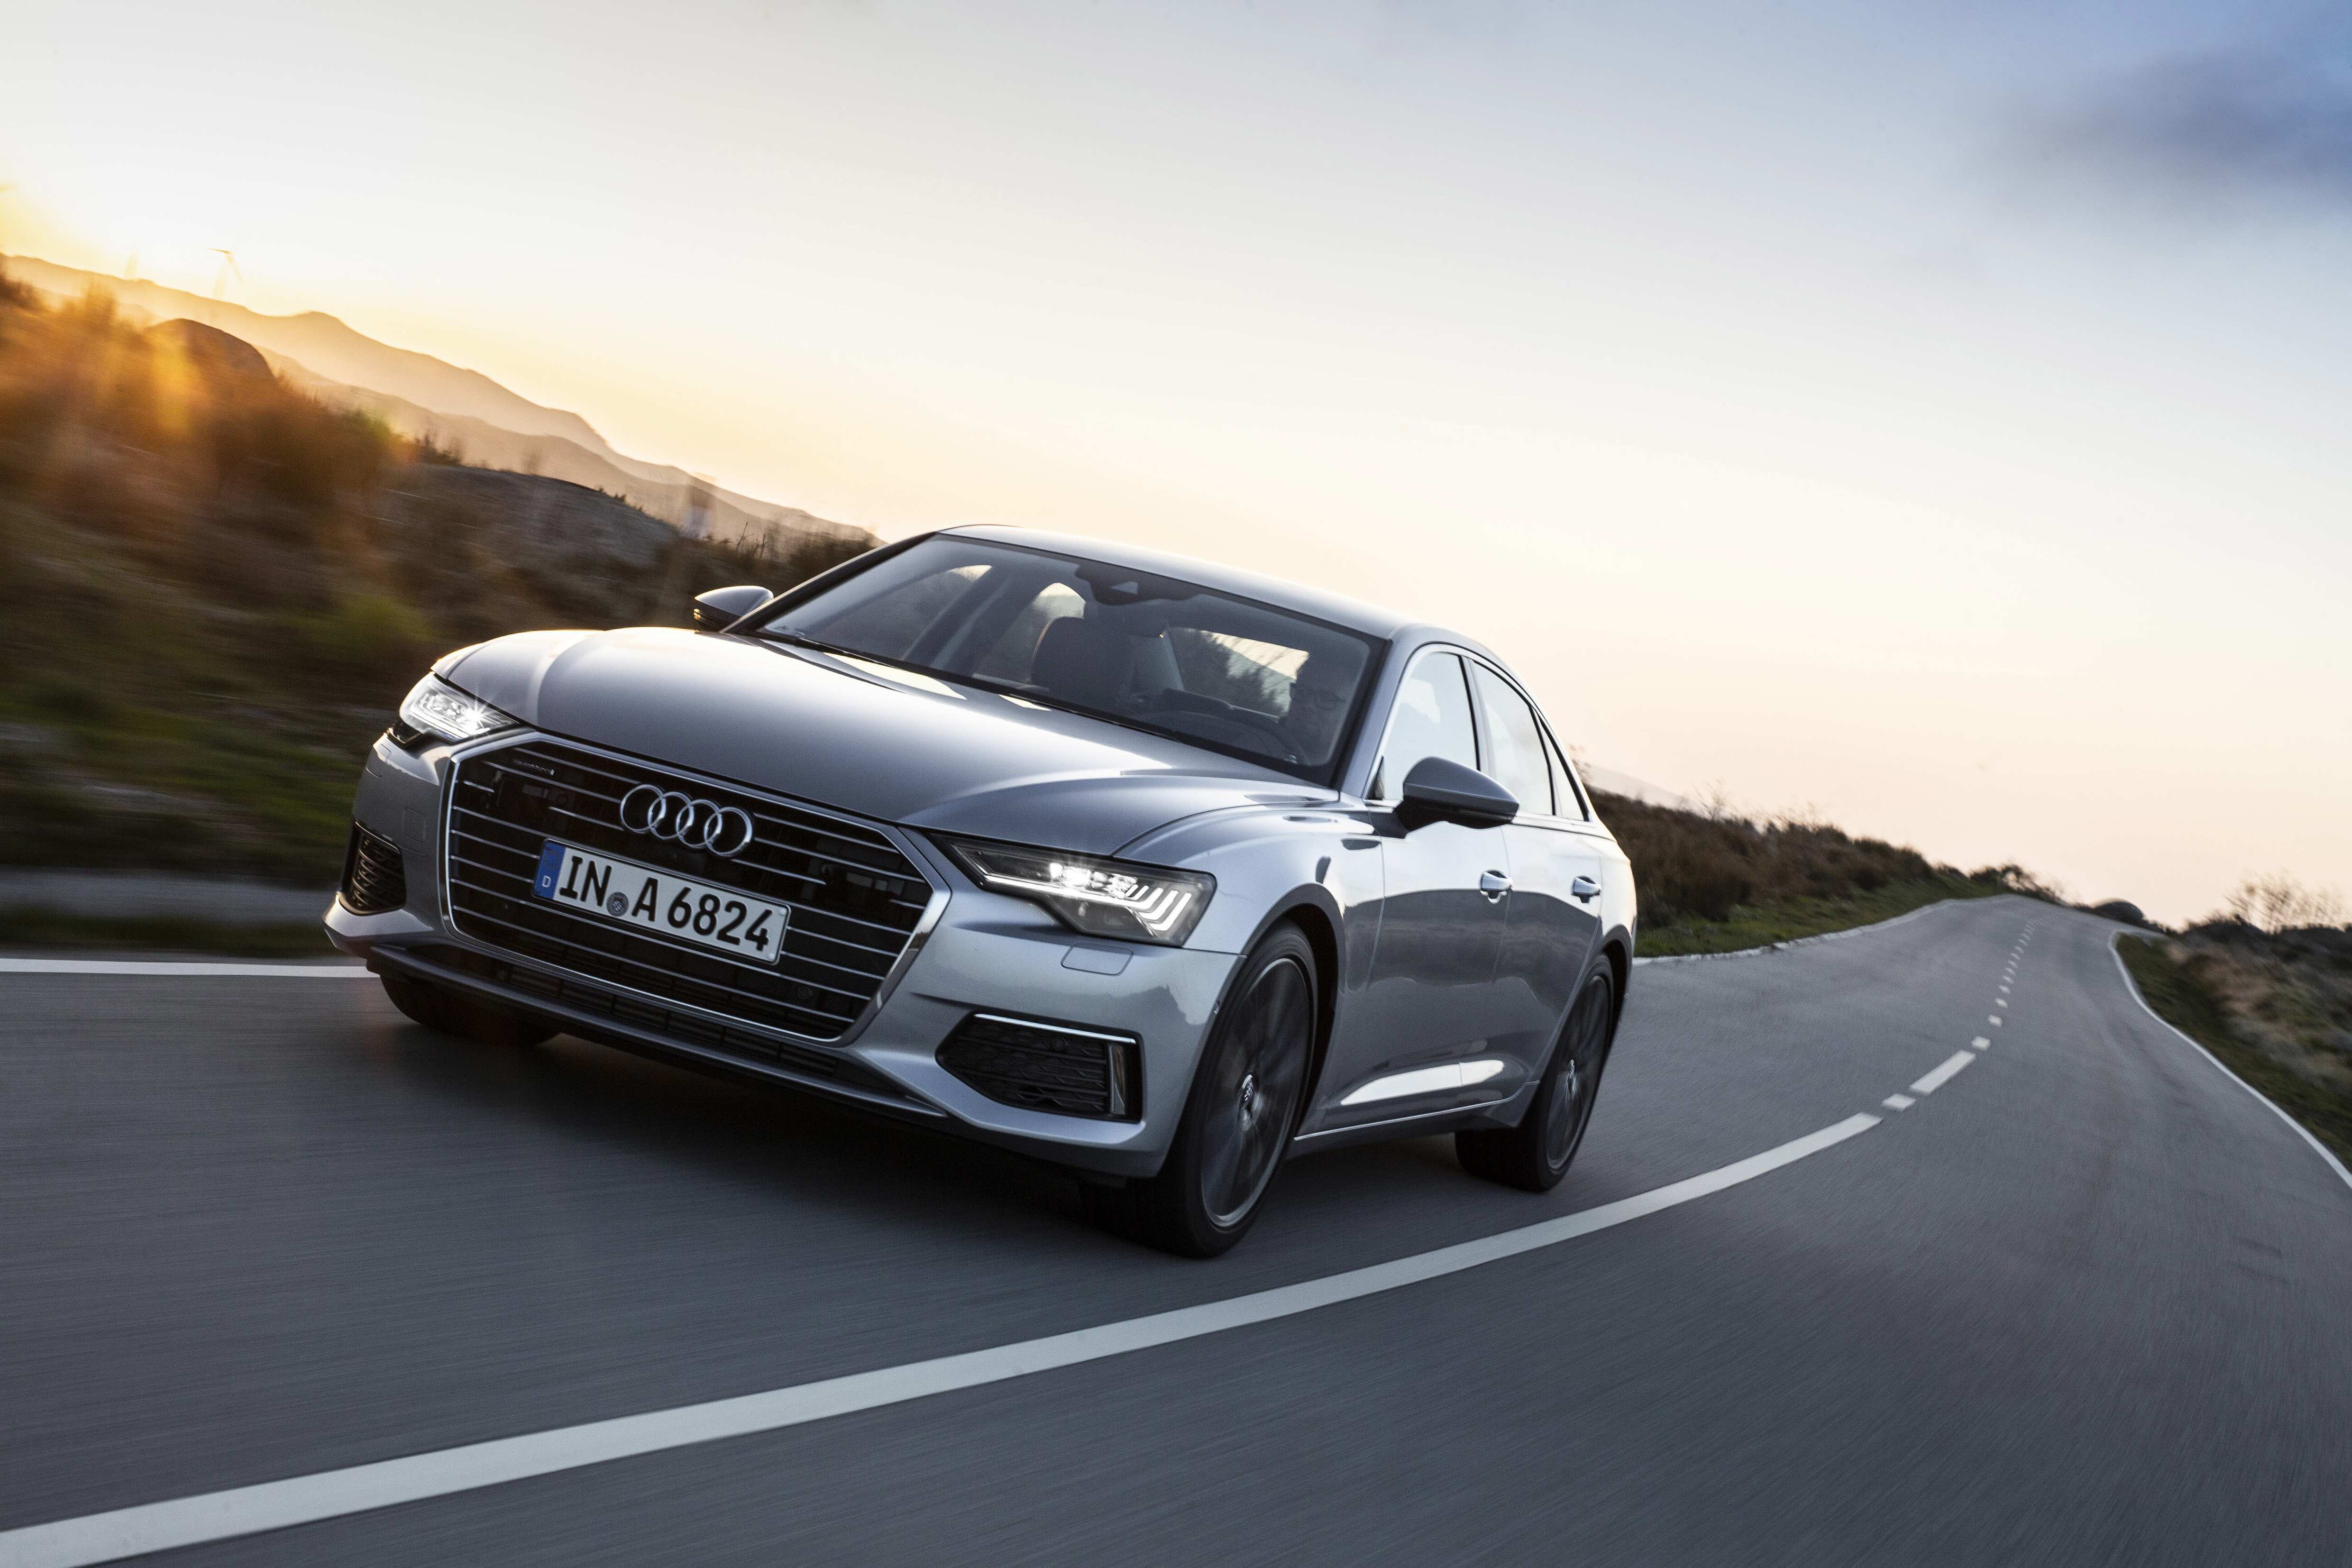 74 The Best 2019 Audi Hybrid Price And Release Date